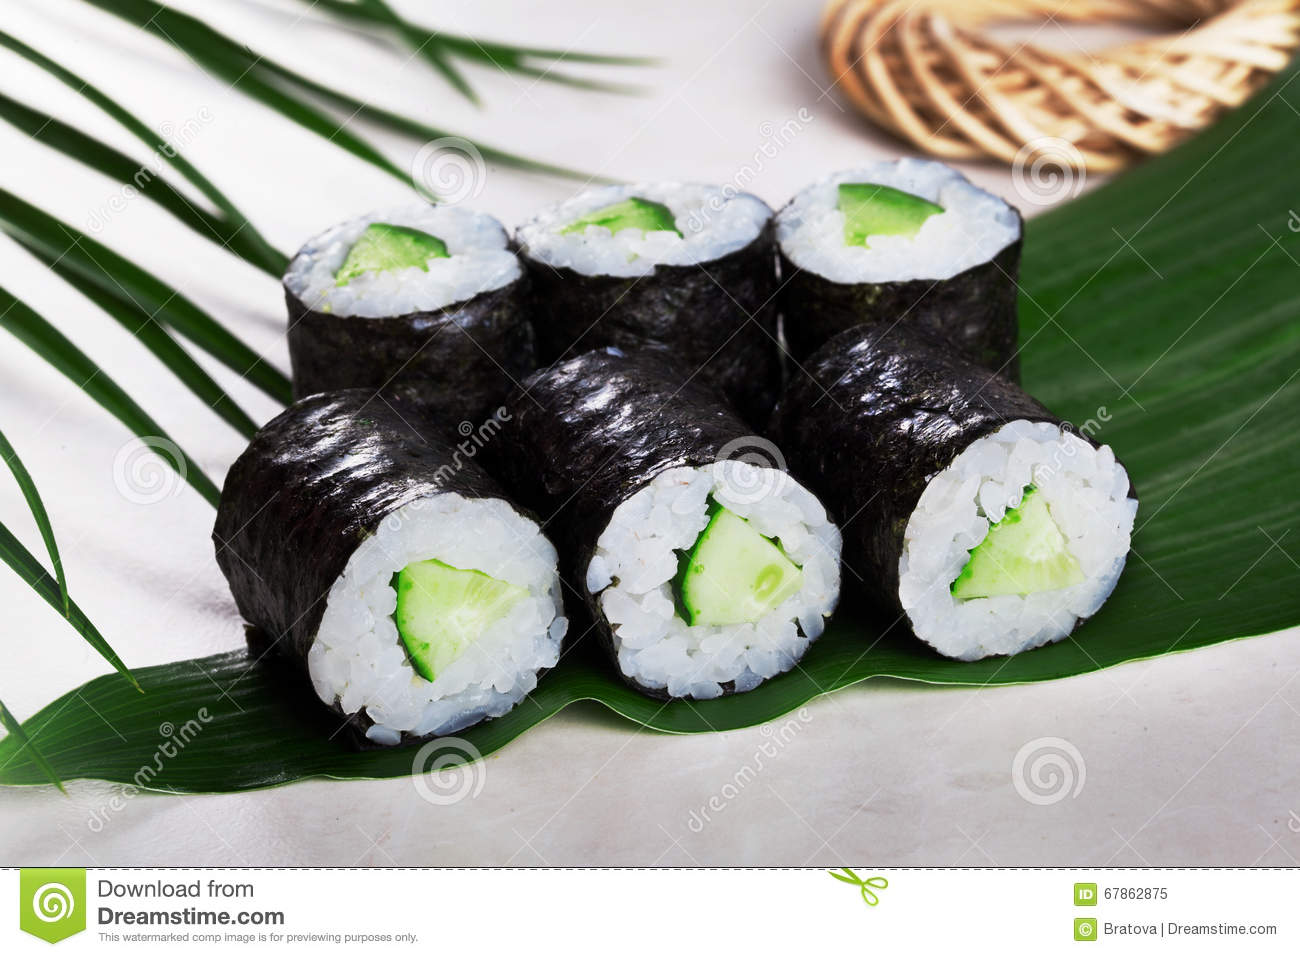 celebrar equilibrio Contrato  Sushi Roll Cucumber Chives Mini Kappa Maki In The Still Life On A Tropical  Leaves Hosomaki Stock Image - Image of background, diet: 67862875